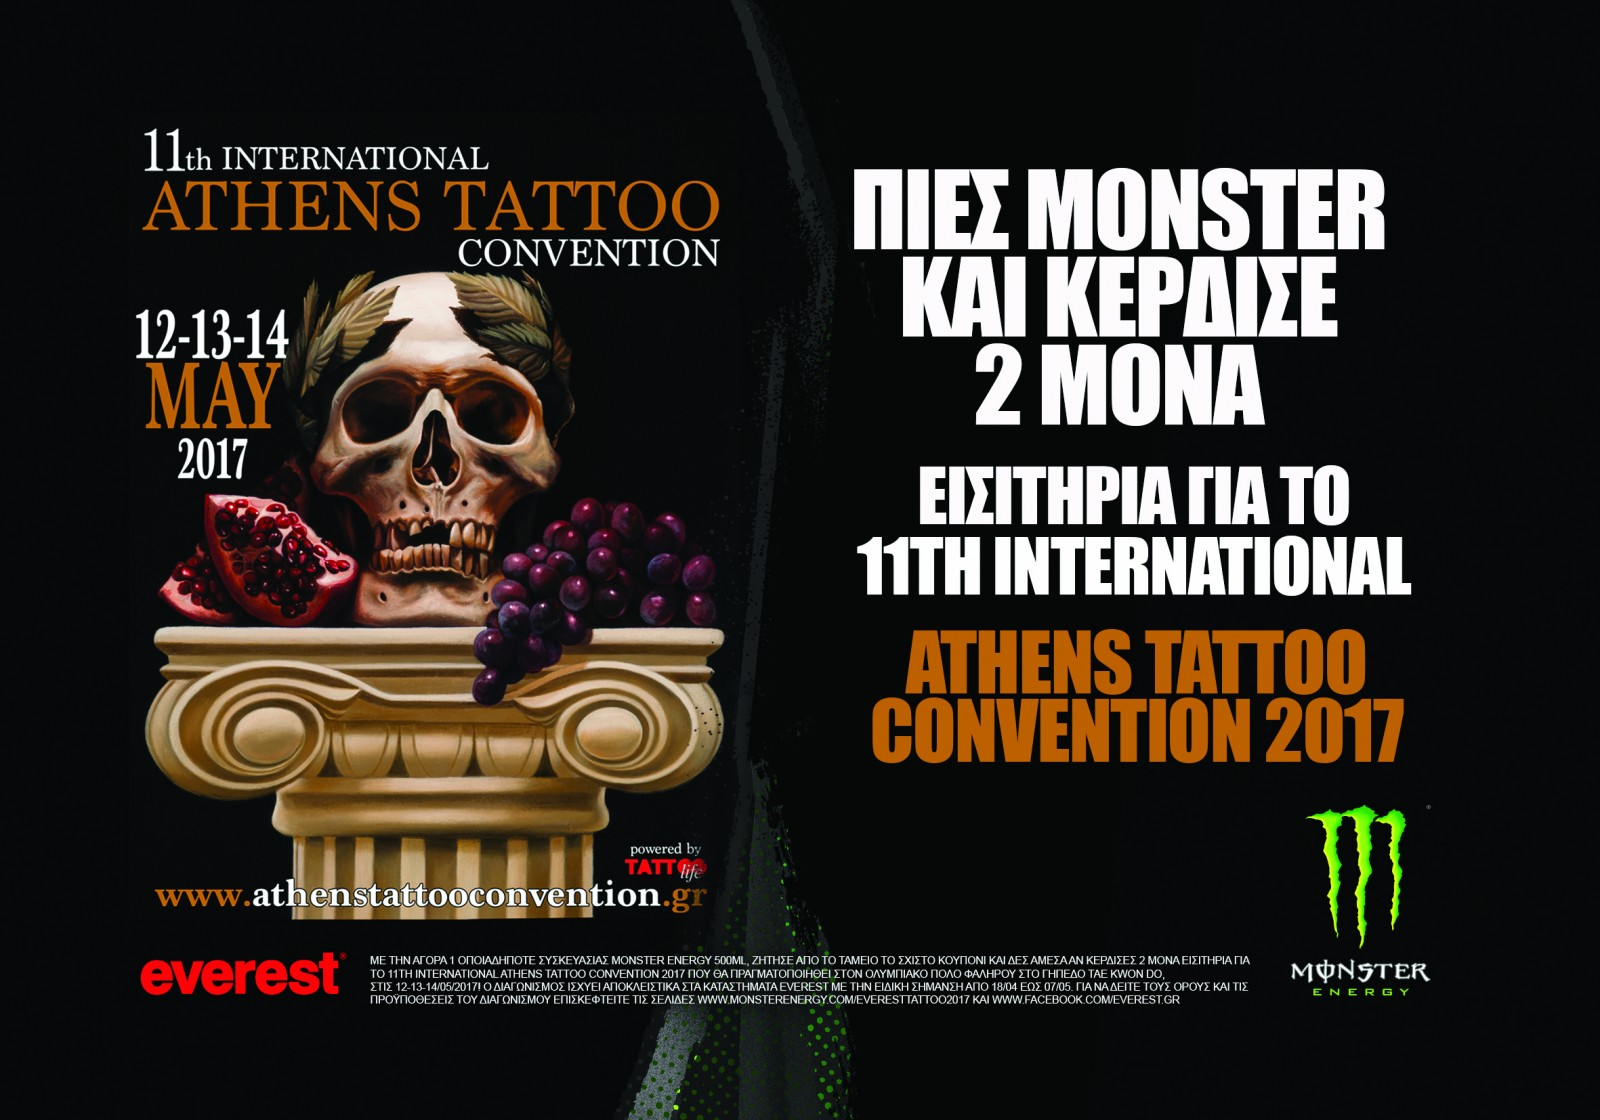 Monster everest monster energy for Nc tattoo conventions 2017